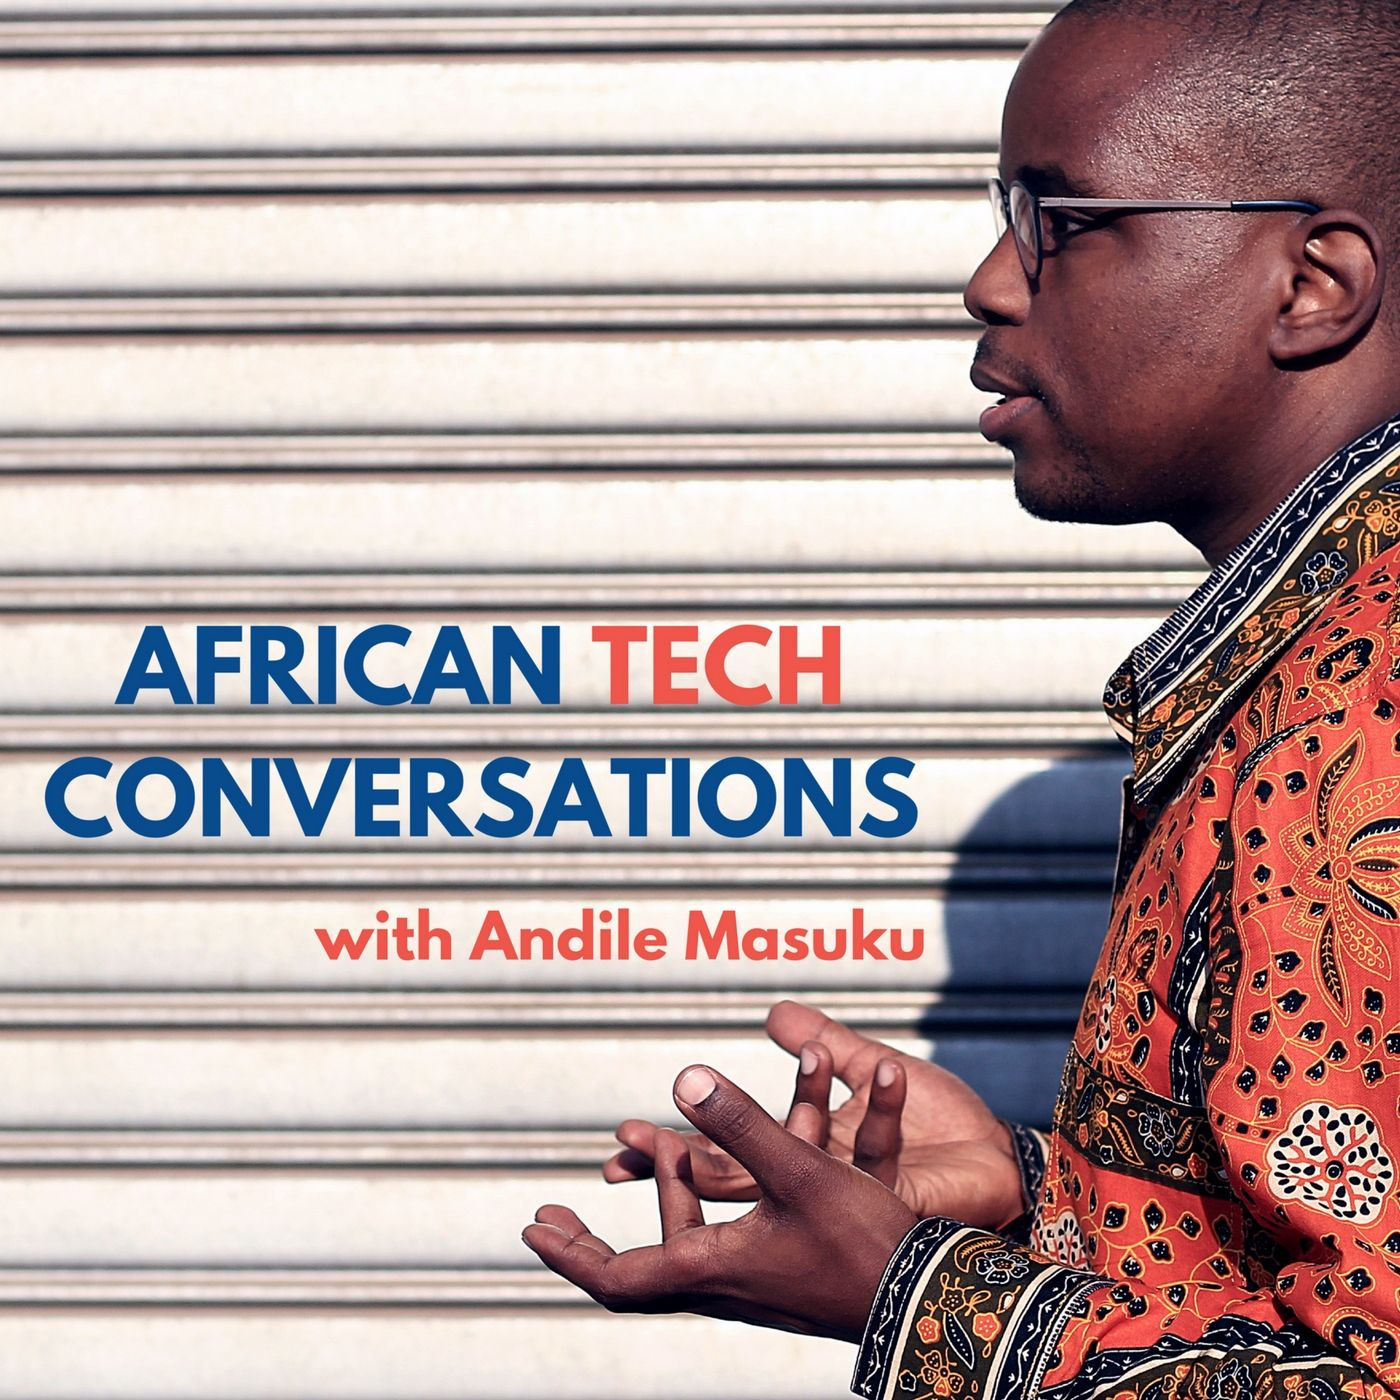 African TechConversations